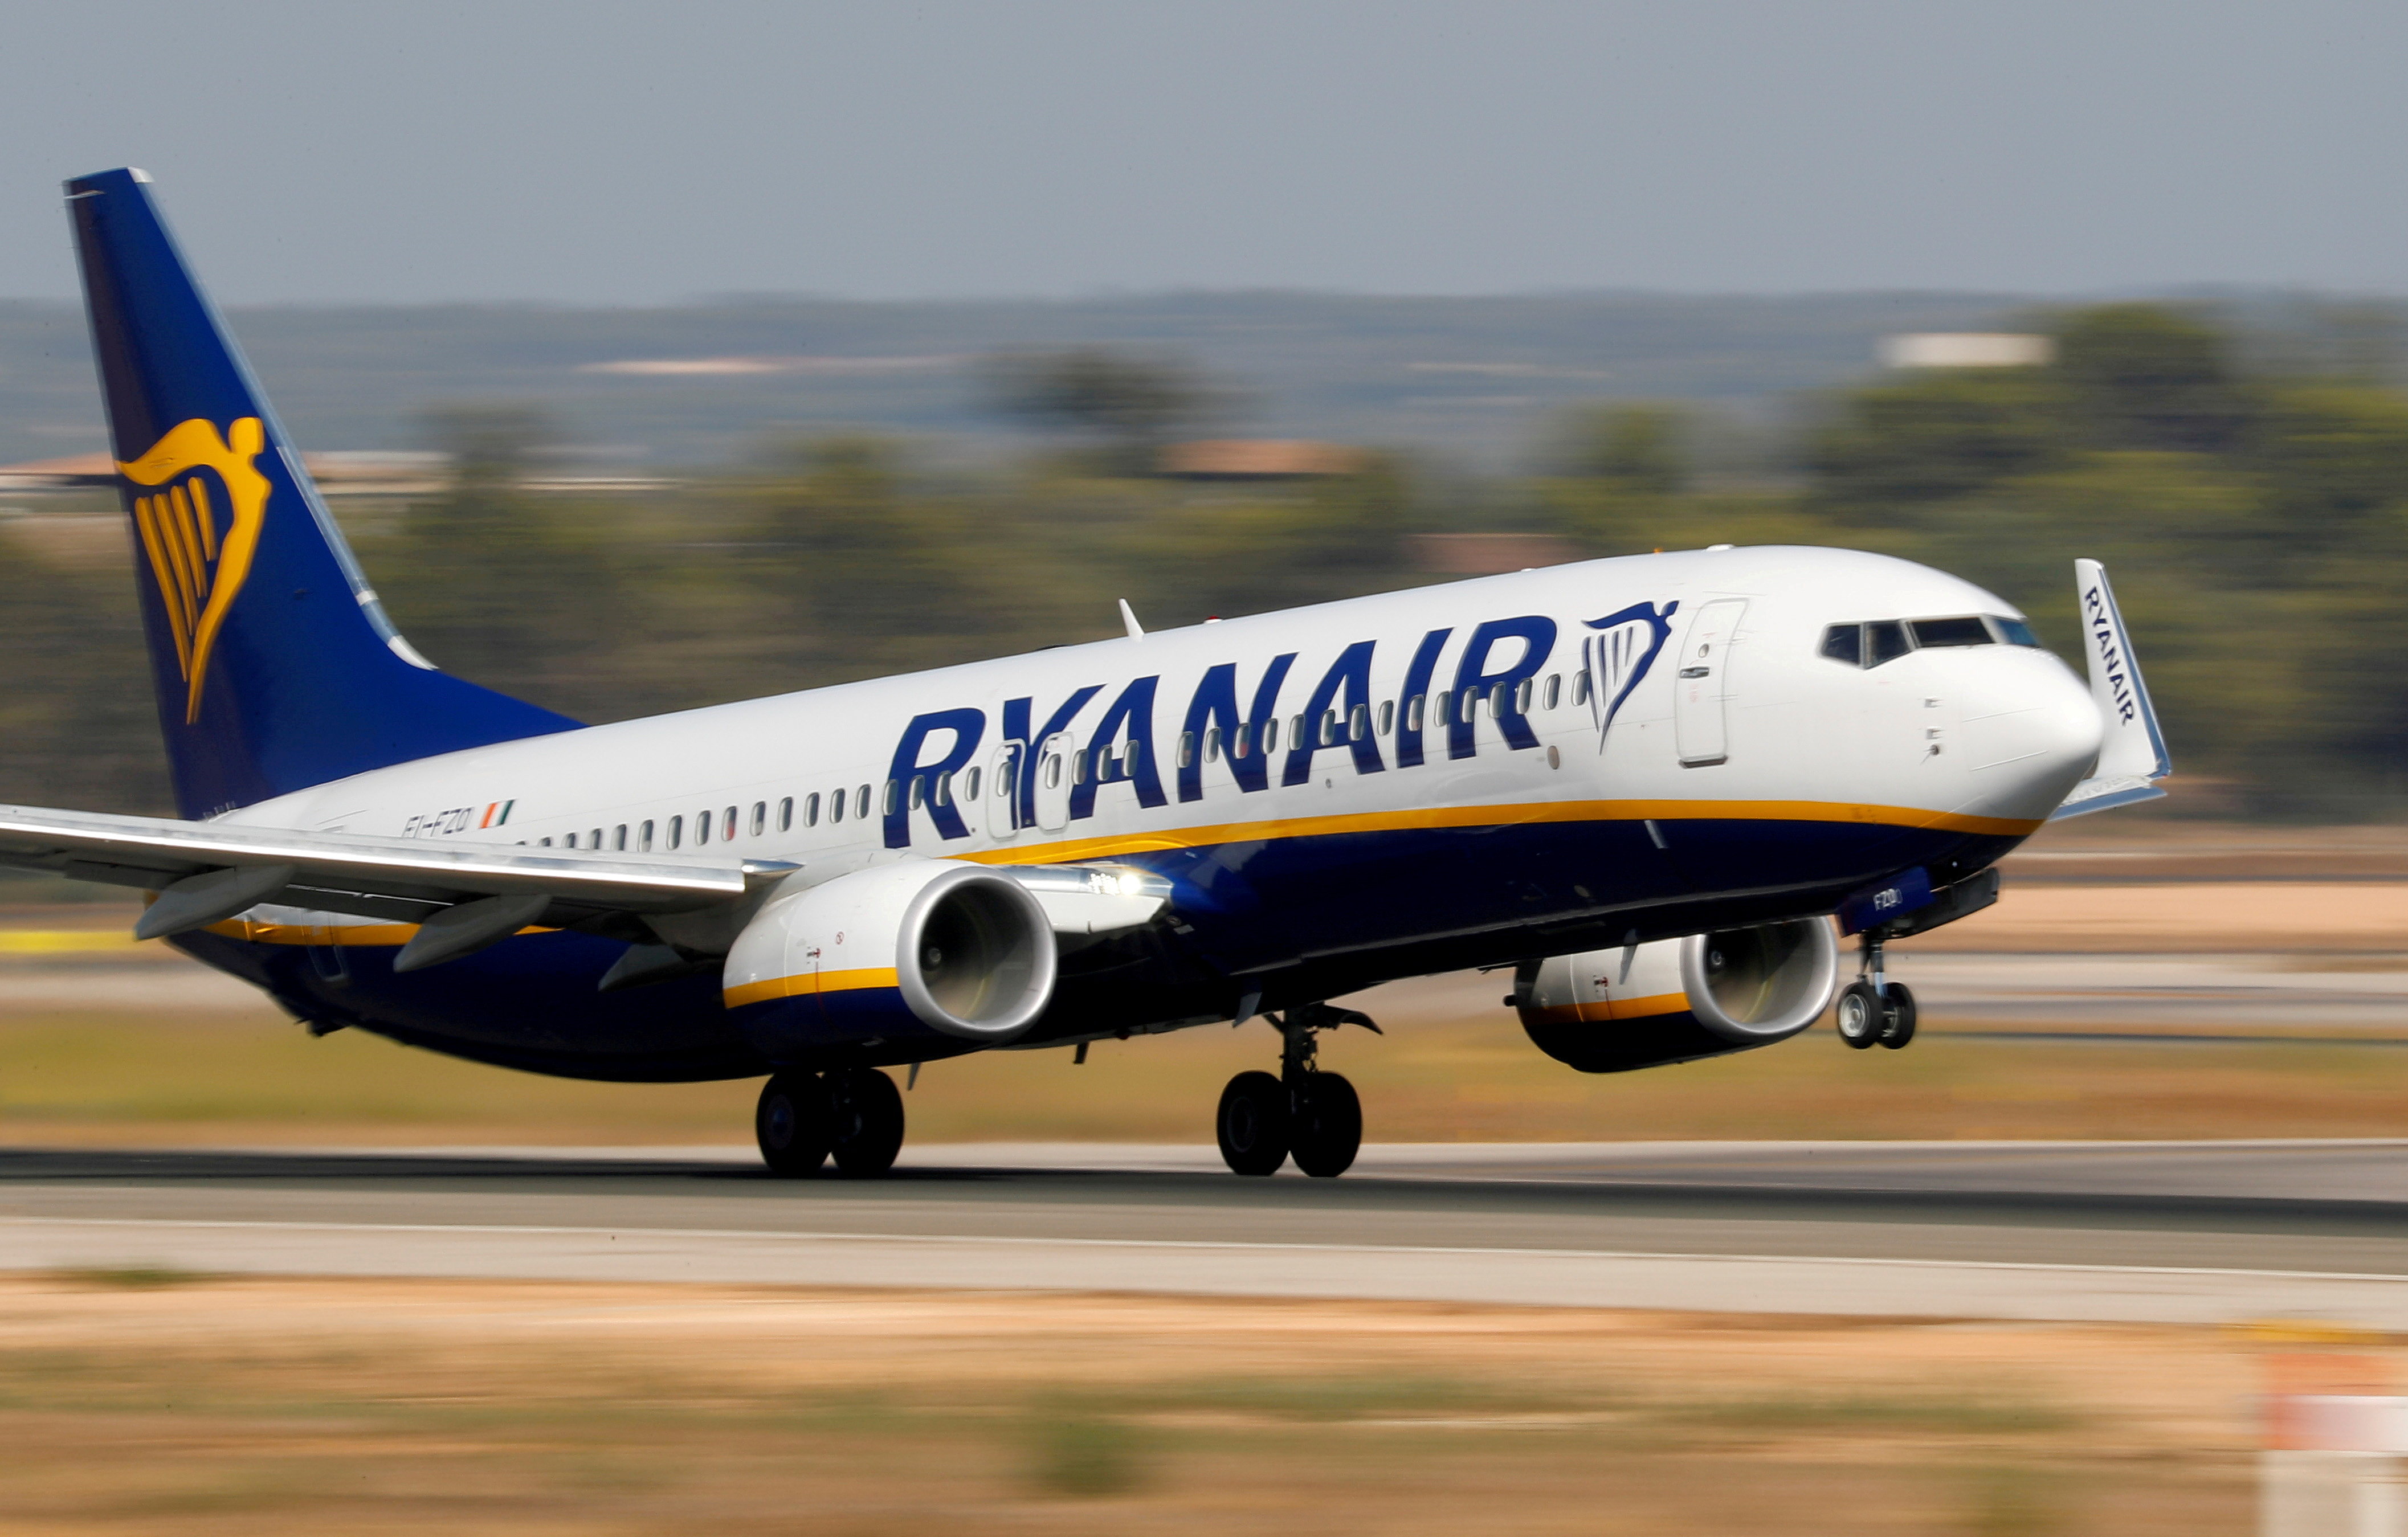 A Ryanair Boeing 737-800 airplane takes off from the airport in Palma de Mallorca, Spain, July 29, 2018.  REUTERS/Paul Hanna/File Photo